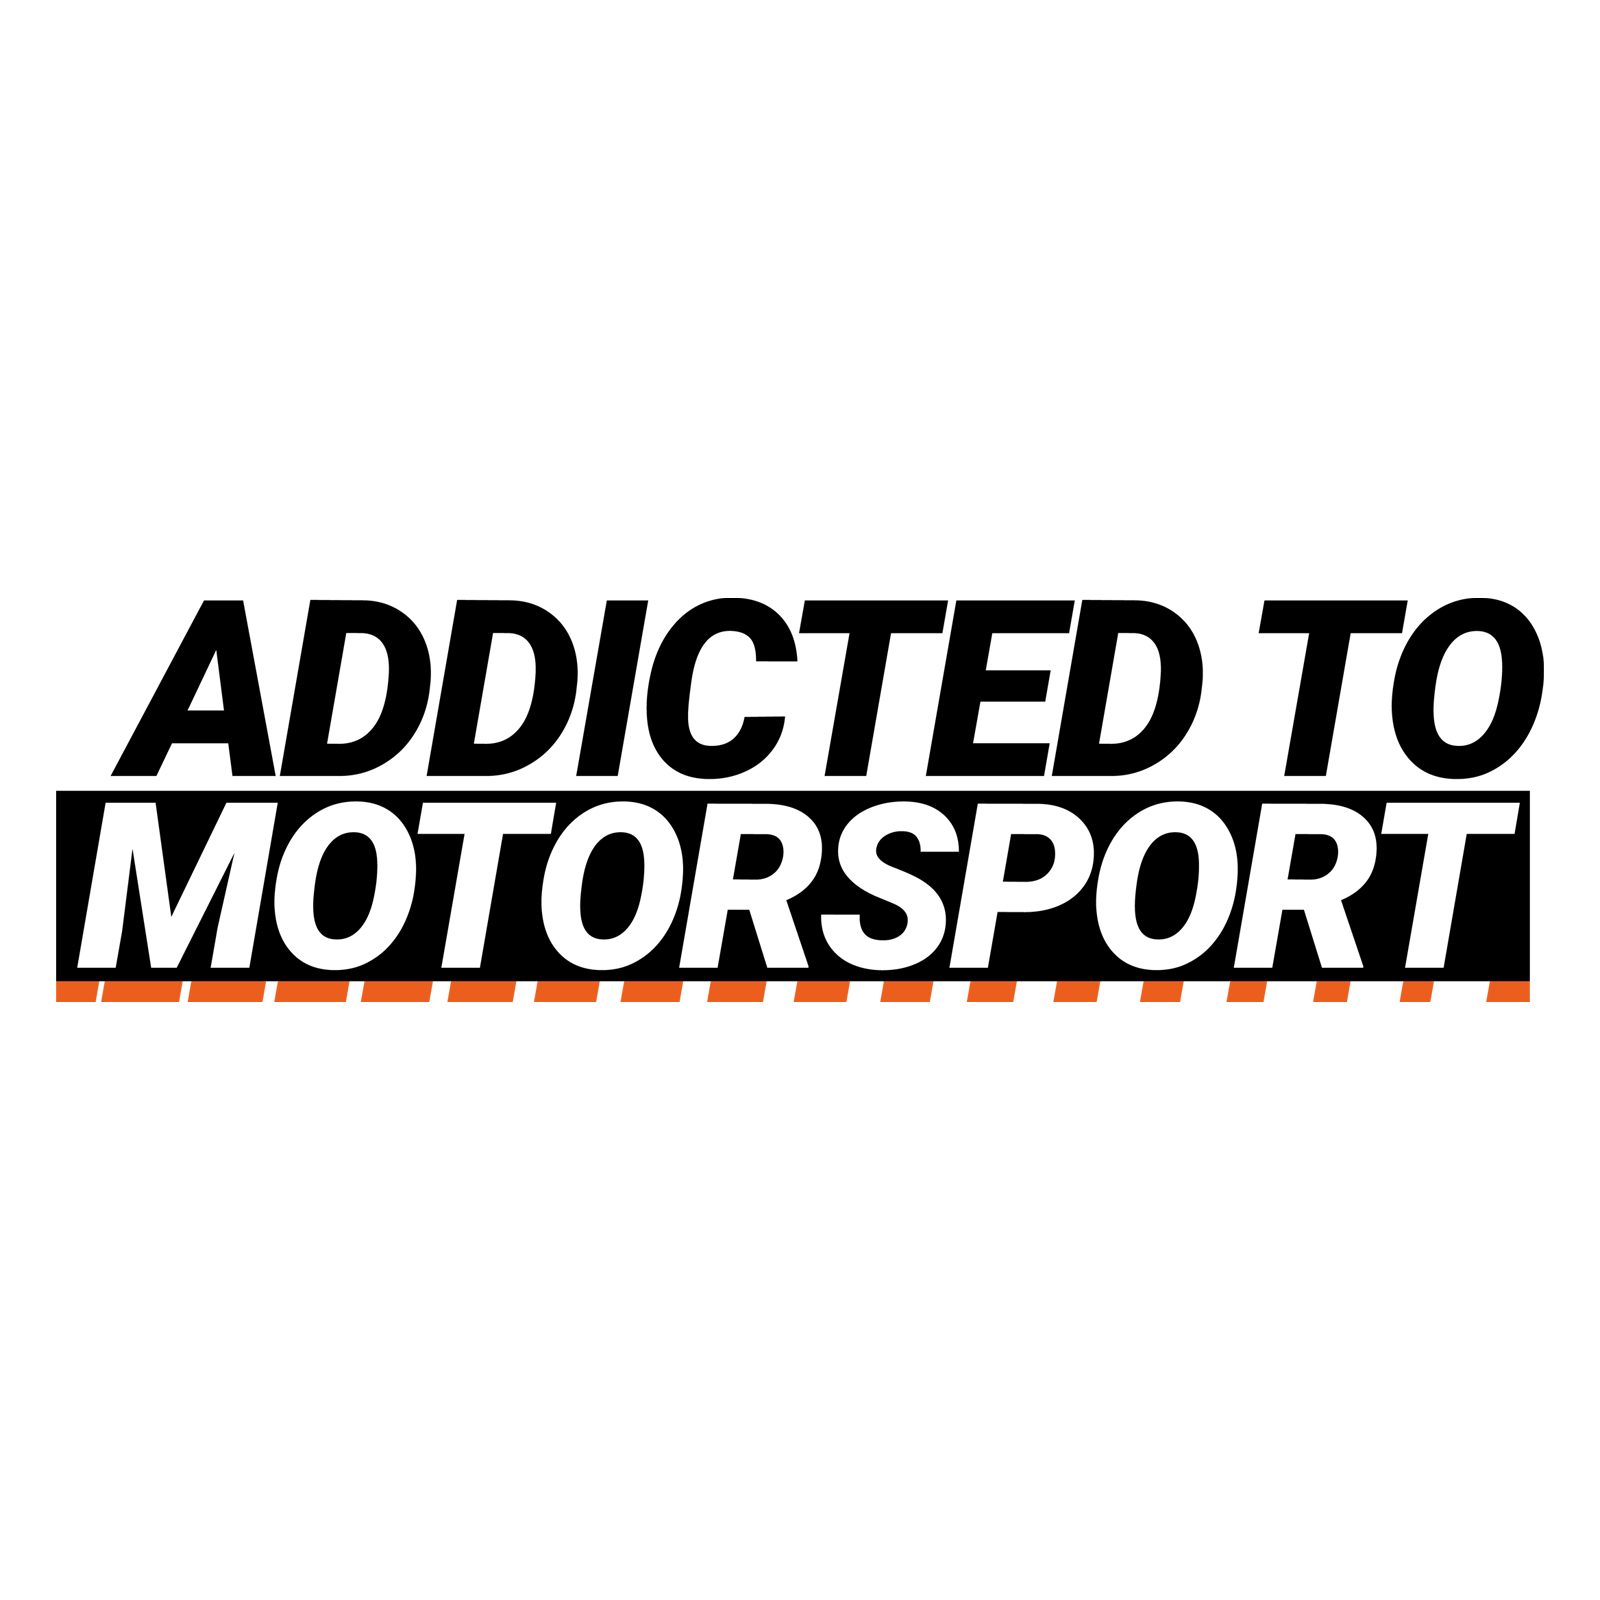 Avatar - addicted to motorsport